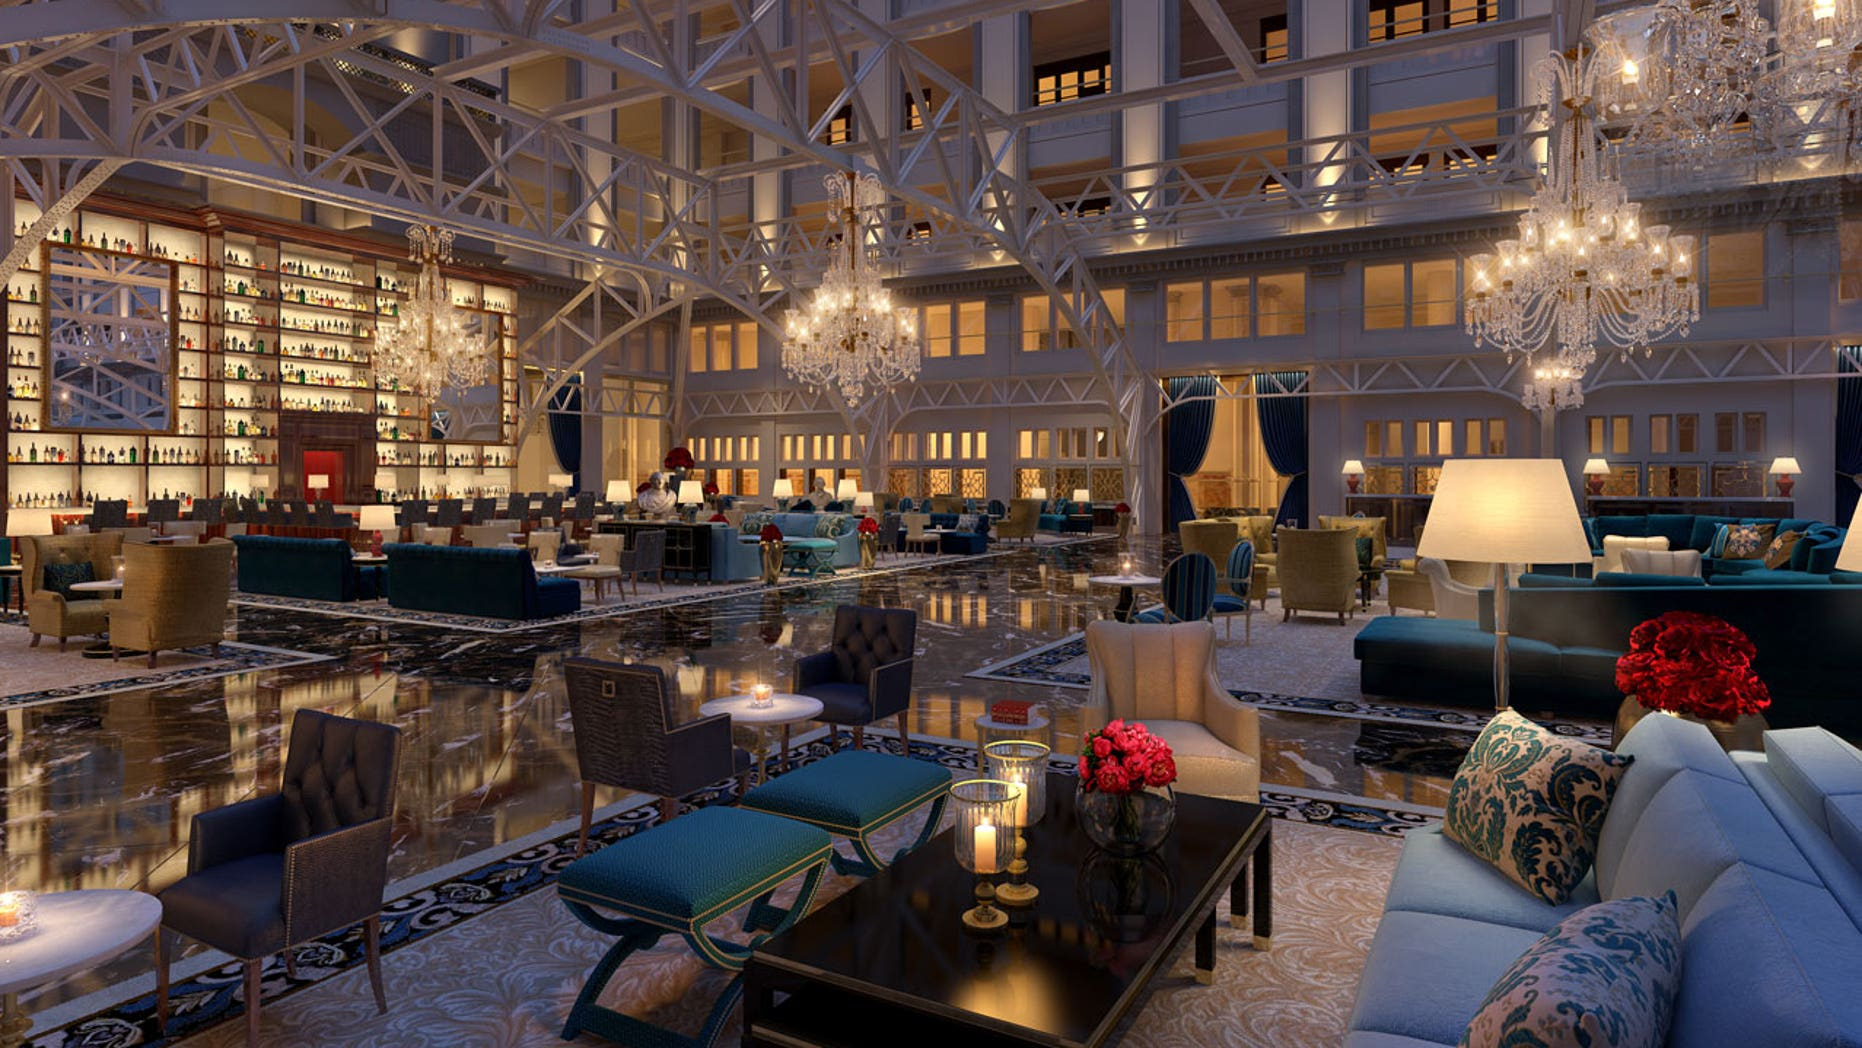 Inside the lavishly appointed lobby bar at Donald Trump's newest hotel property in the nation's capital.